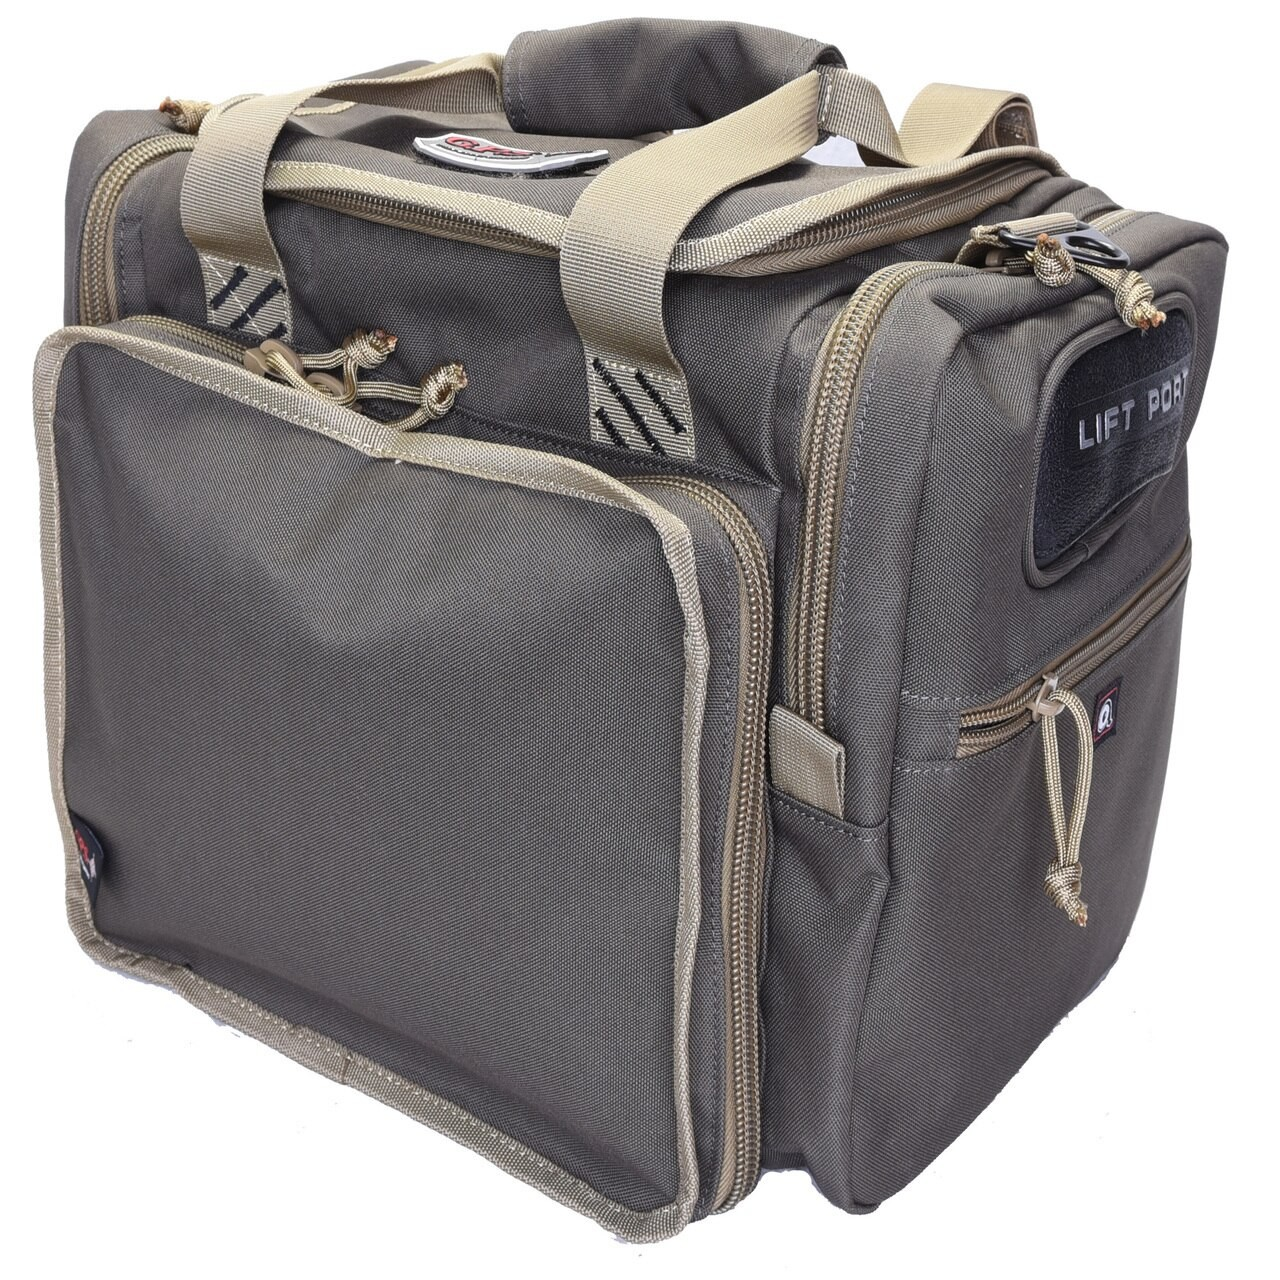 G Outdoors Lg Range Bag,Lift Ports,4 ammo Dump Cups